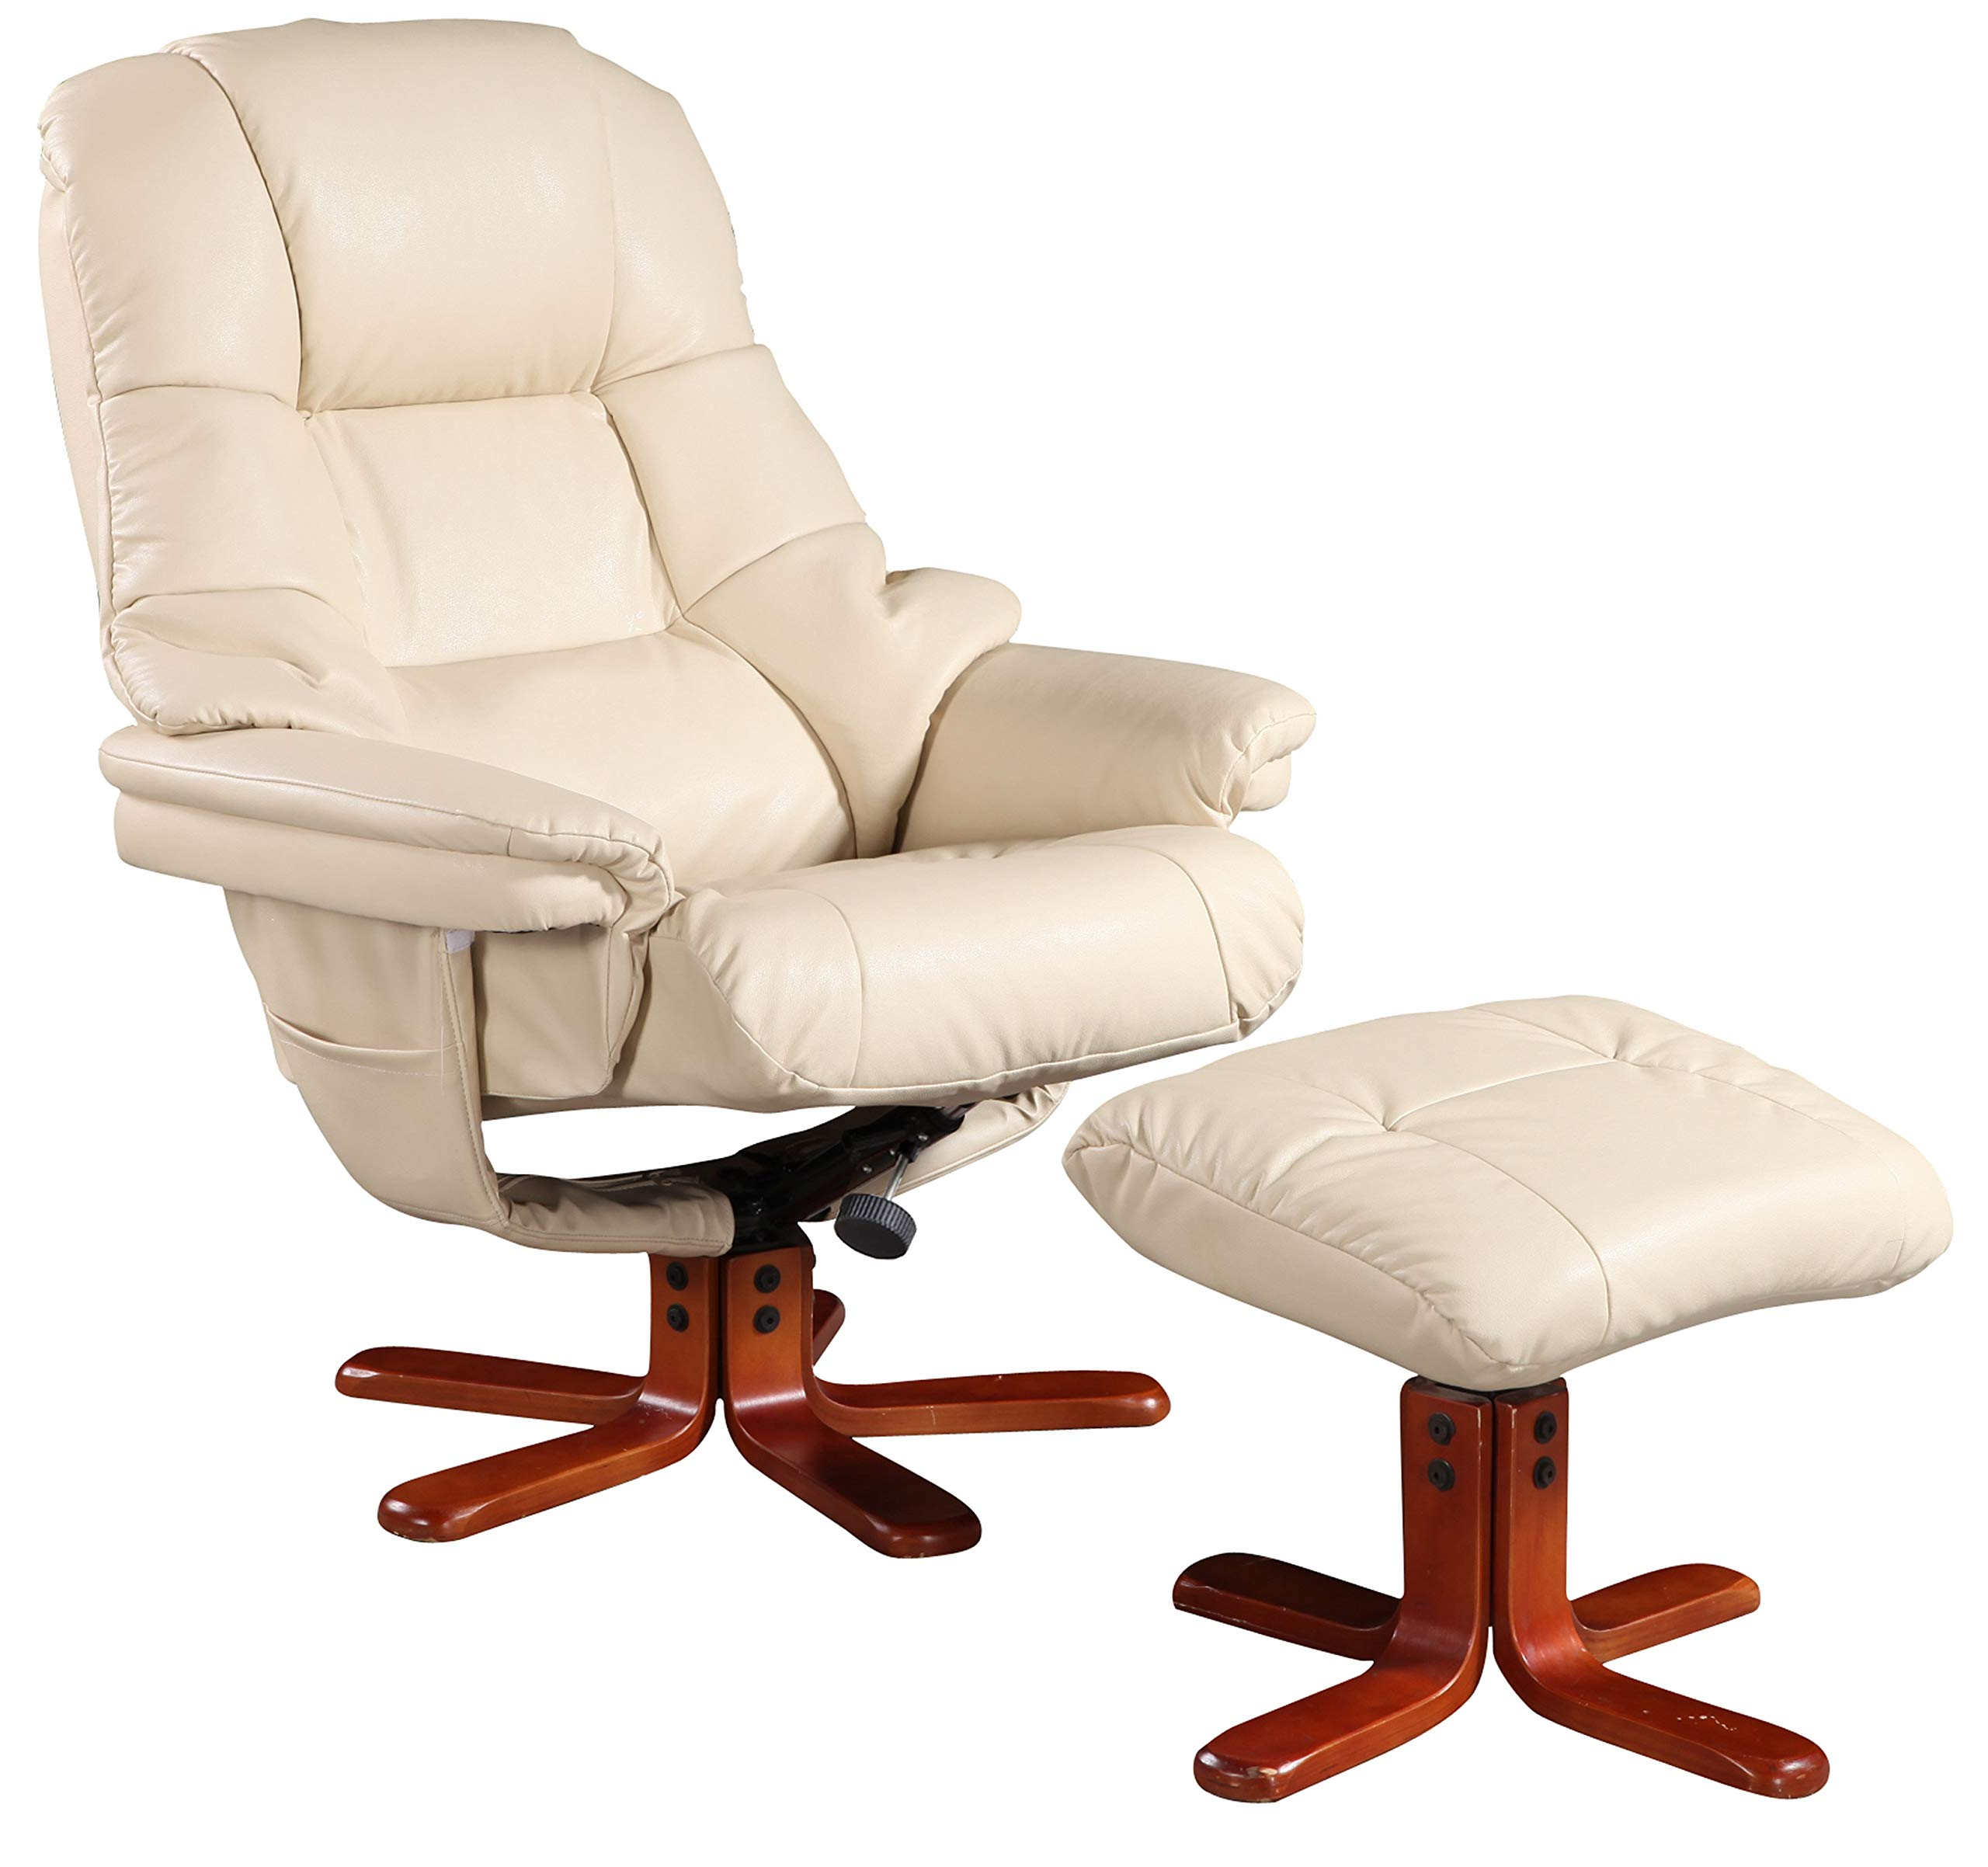 GFA Alizza Swivel Recliner Chair & Matching Footstool In